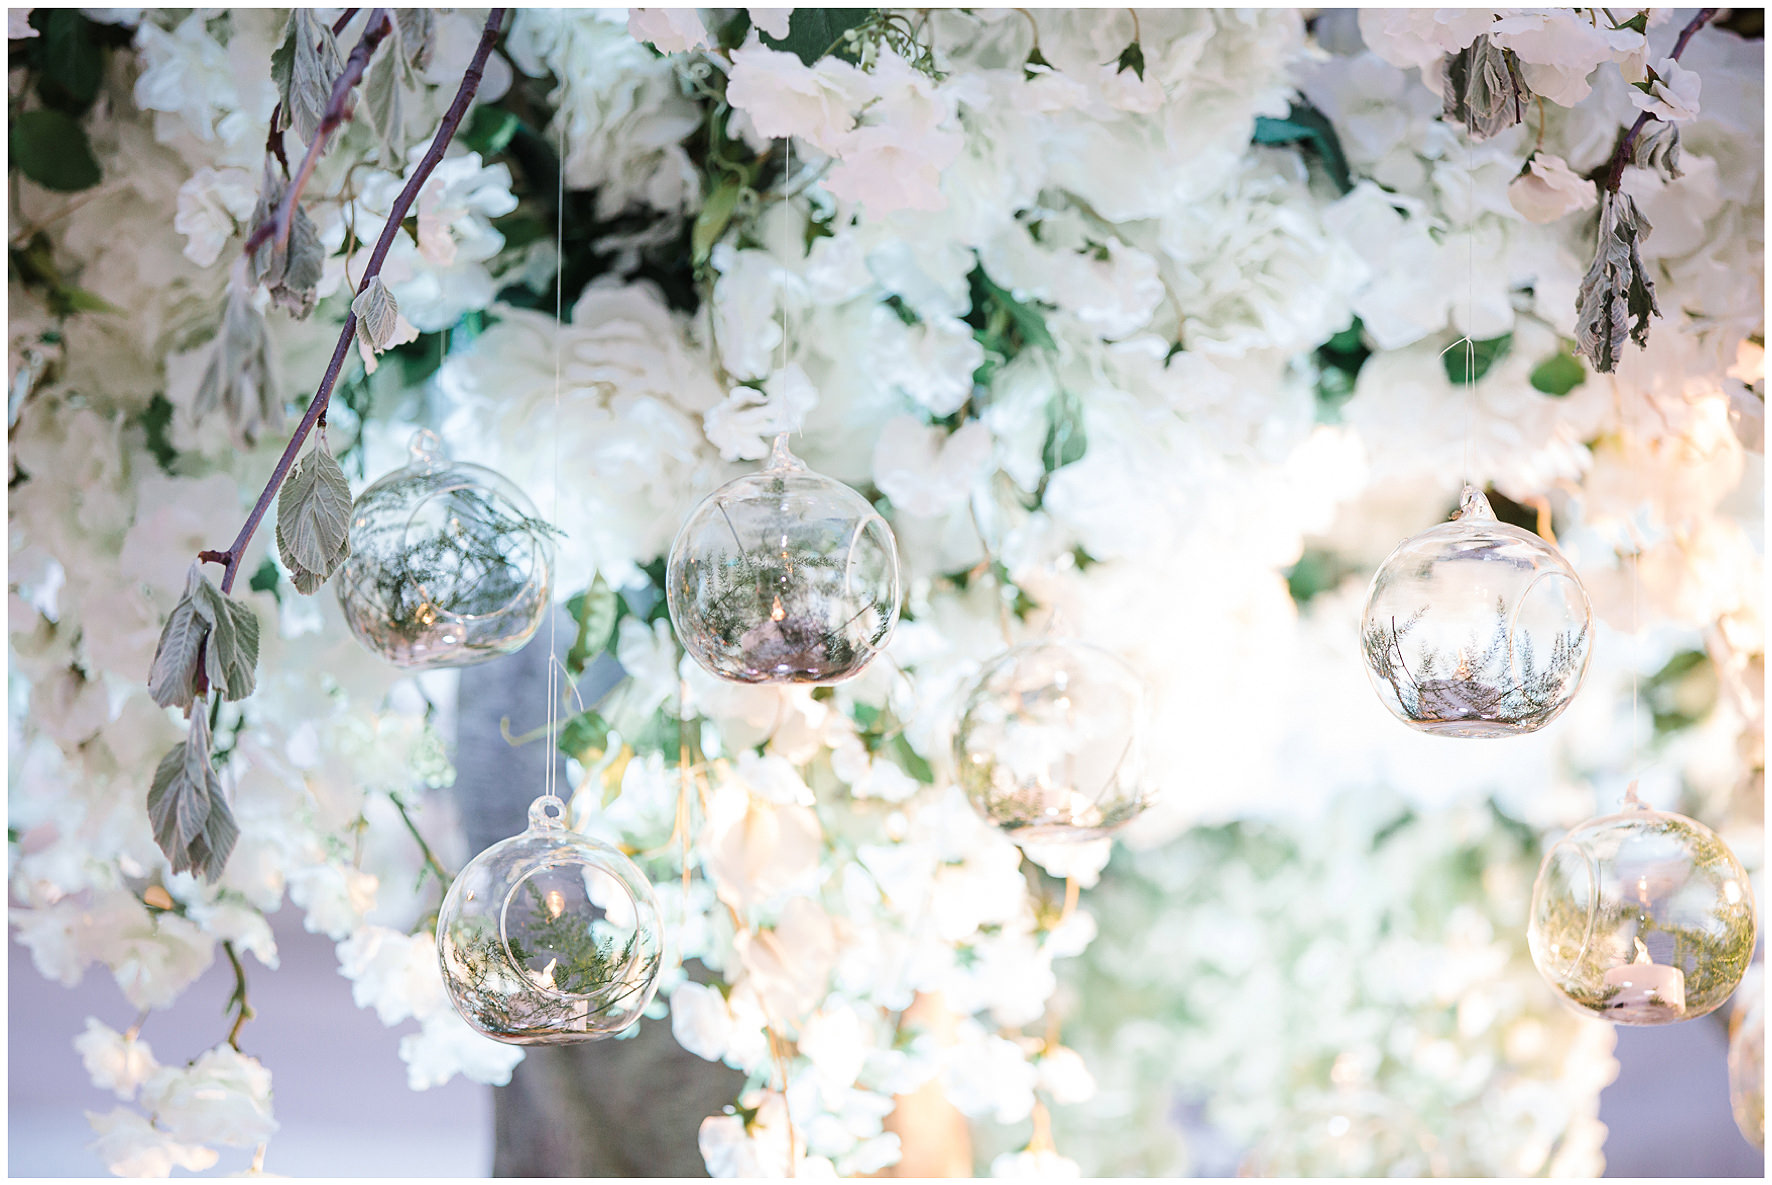 luxury wedding, berkshire, home wedding, florals, details, floral tree, feature. Lucy Davenport Photography